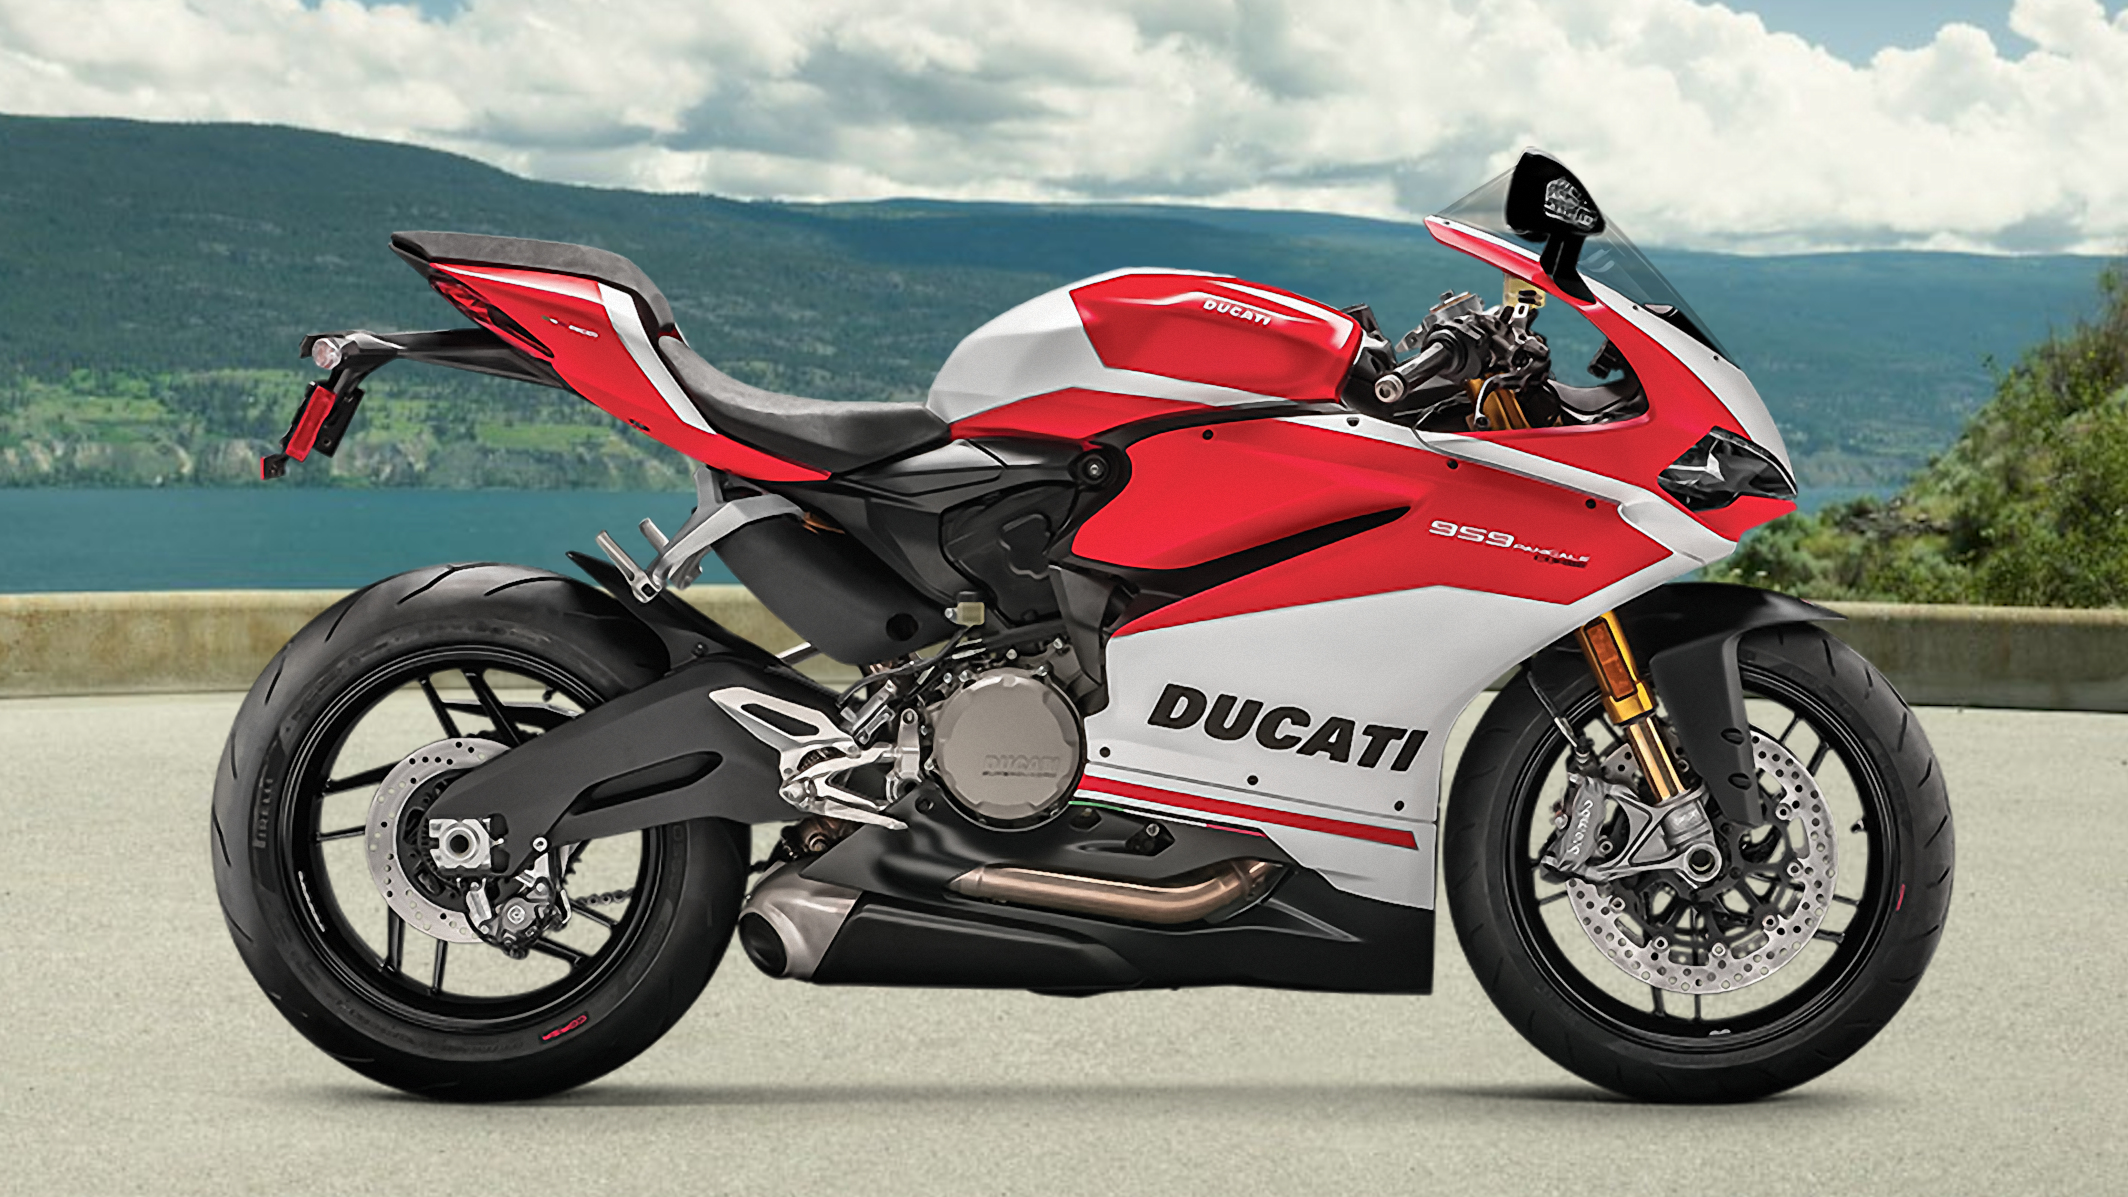 2019 Ducati 959 Panigale 959 Panigale Corse Top Speed